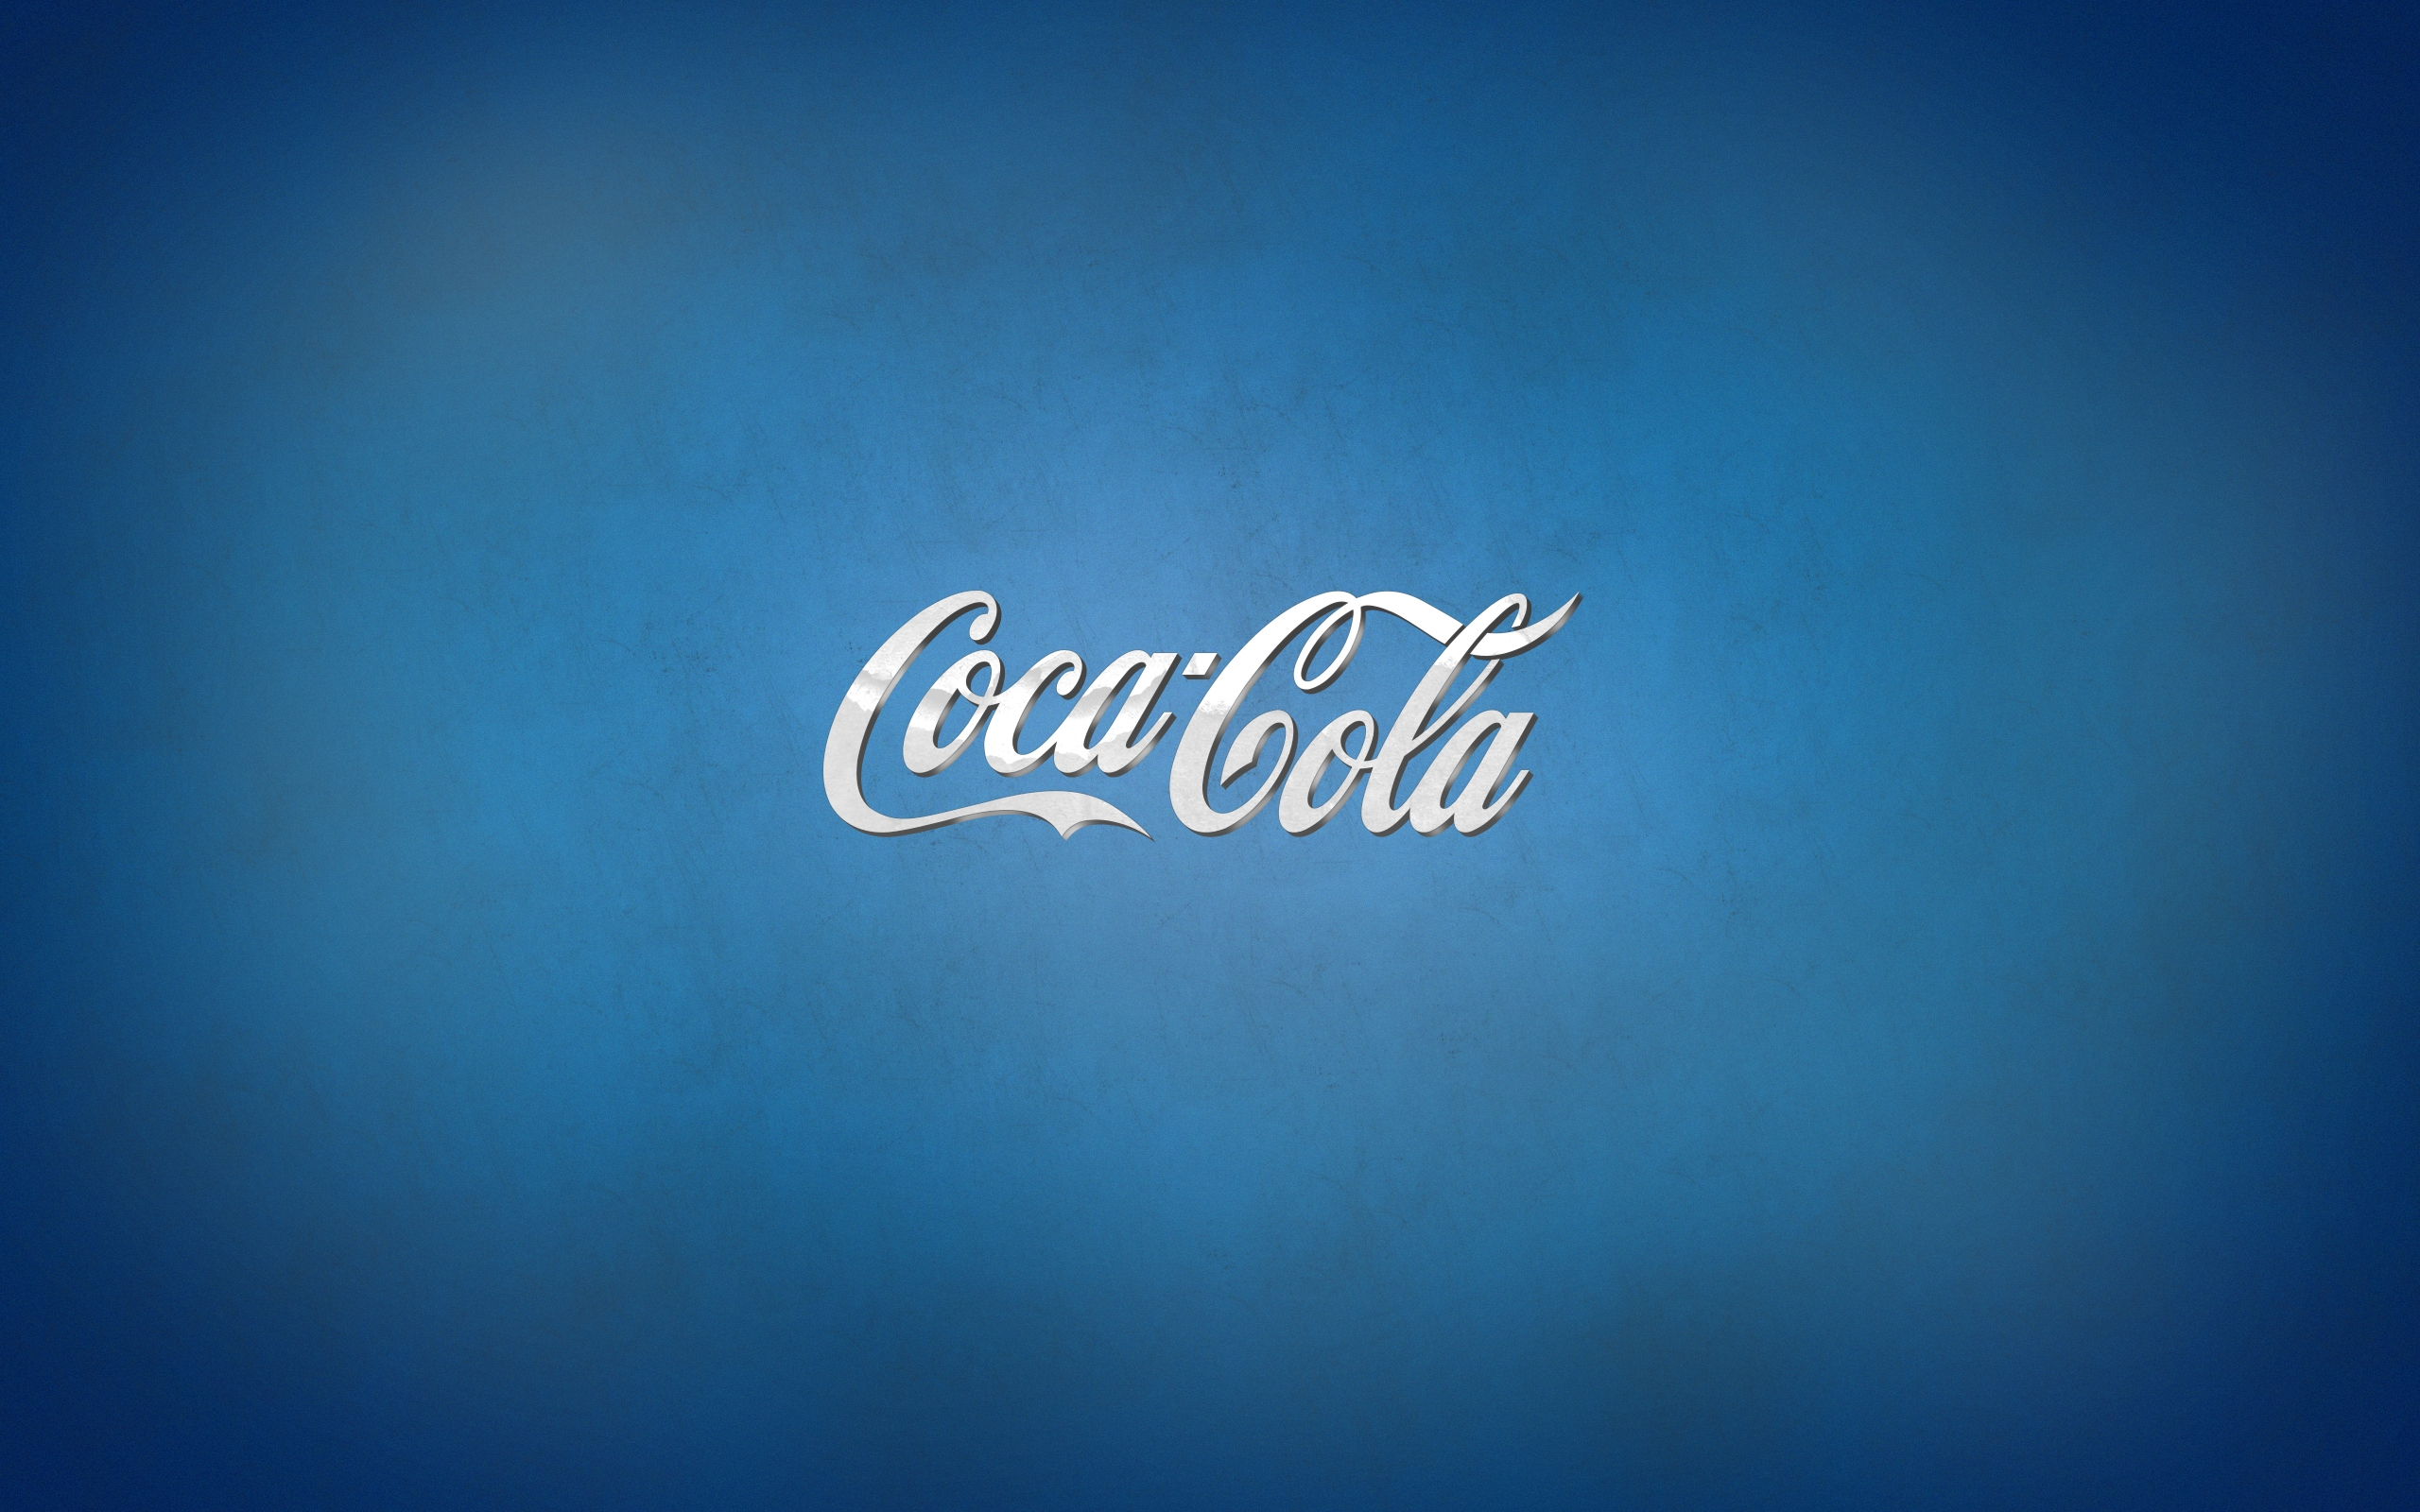 fb086748 Coca Cola HD Wallpaper | Background Image | 2560x1600 | ID:572613 -  Wallpaper Abyss